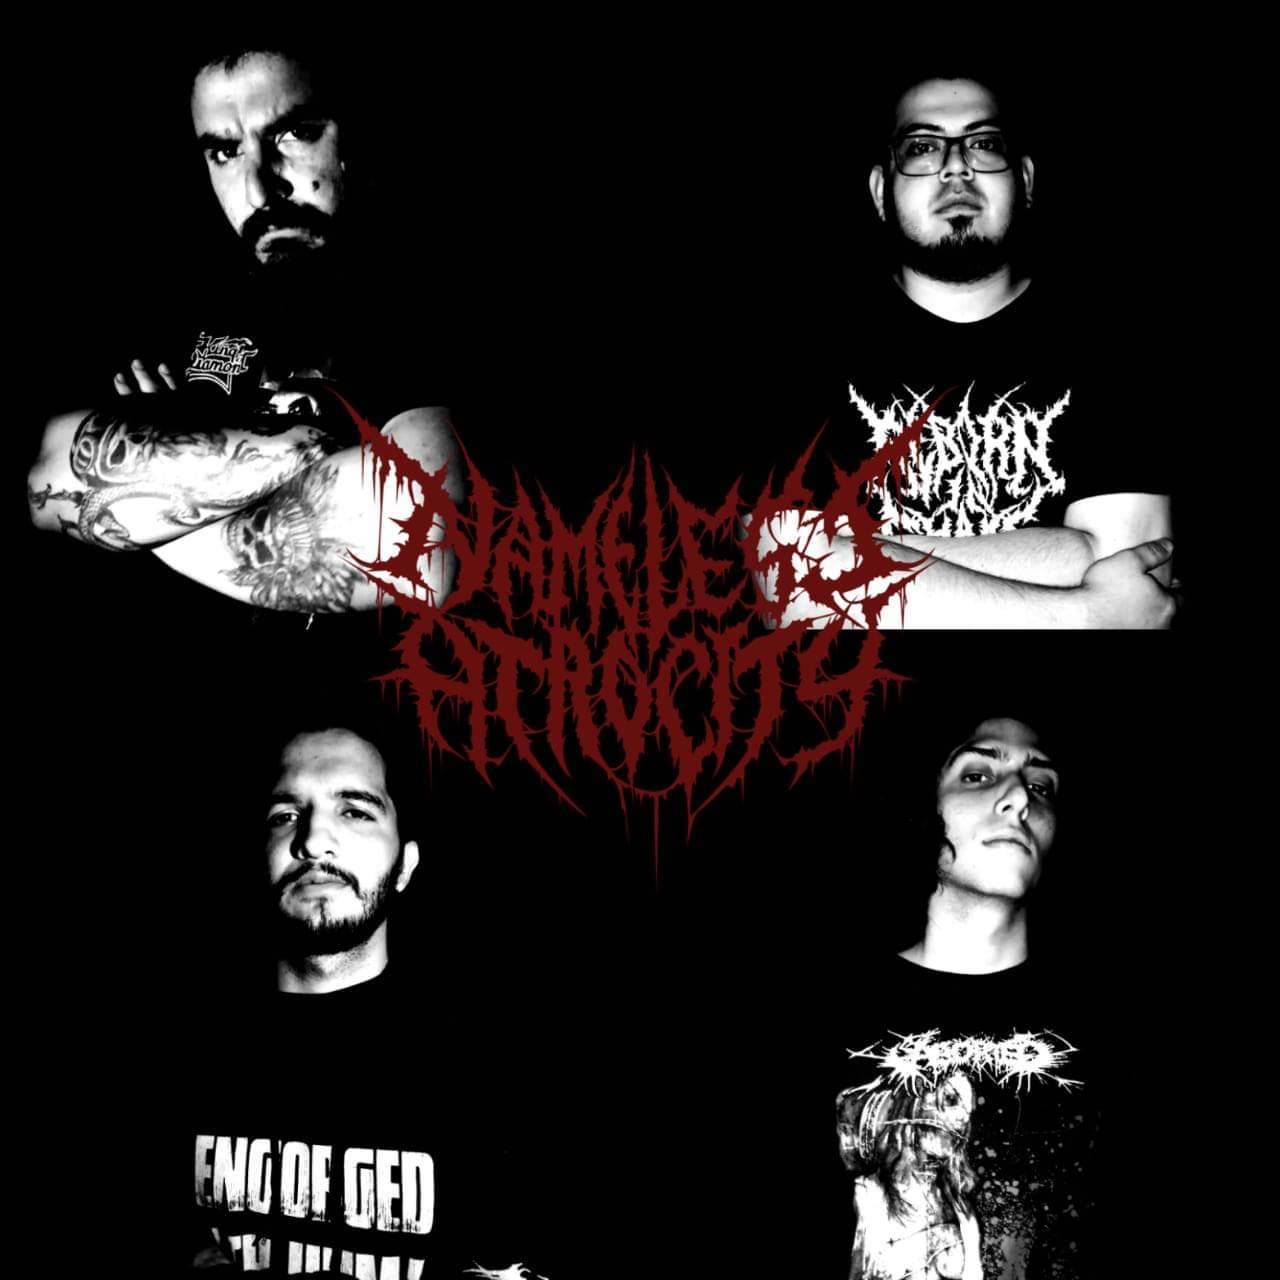 Nameless Atrocity - Photo